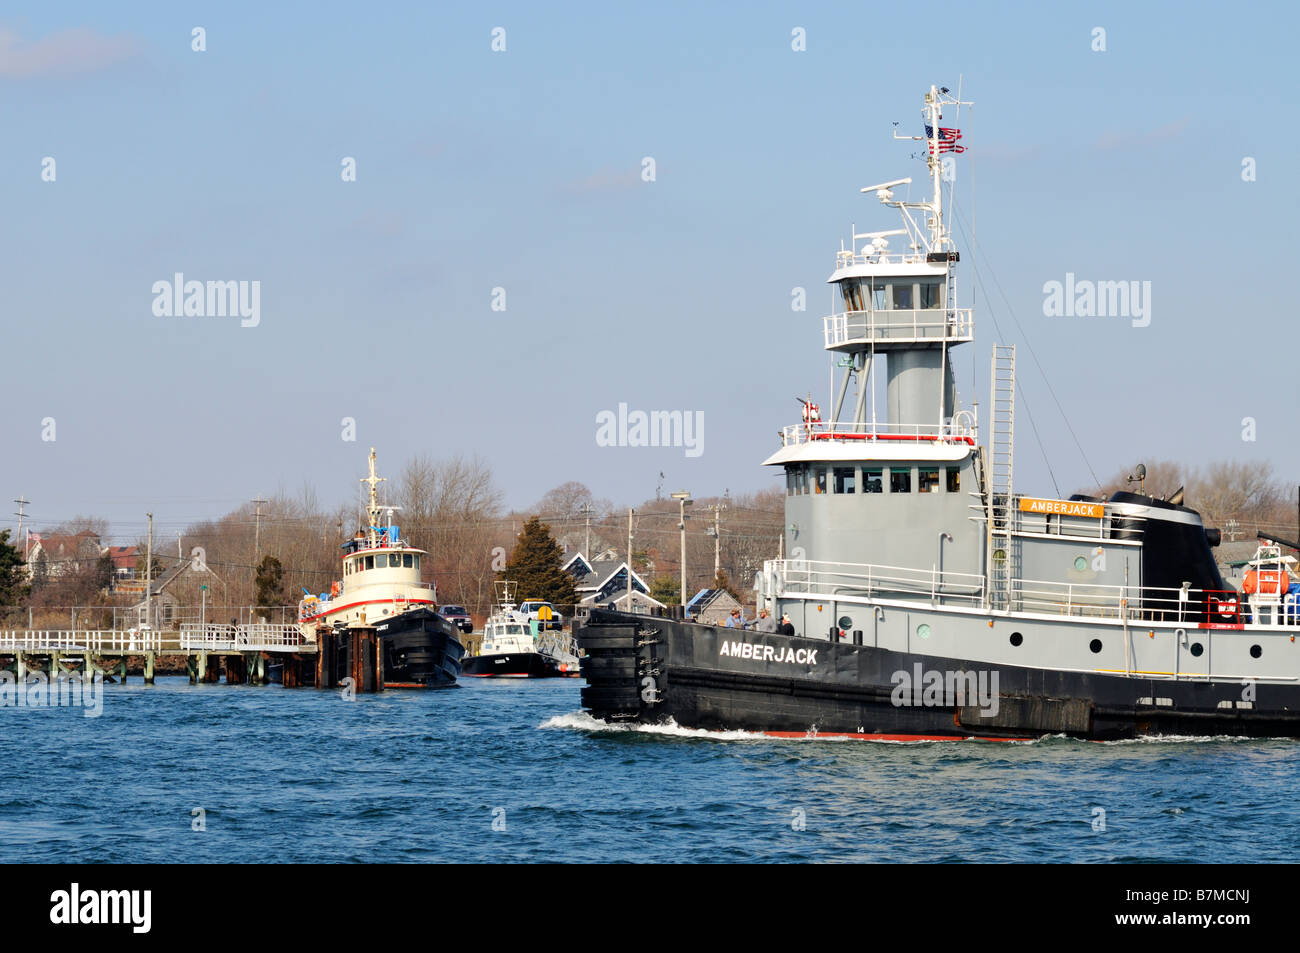 One grey tugboat passing in front of another docked tugboat - Stock Image